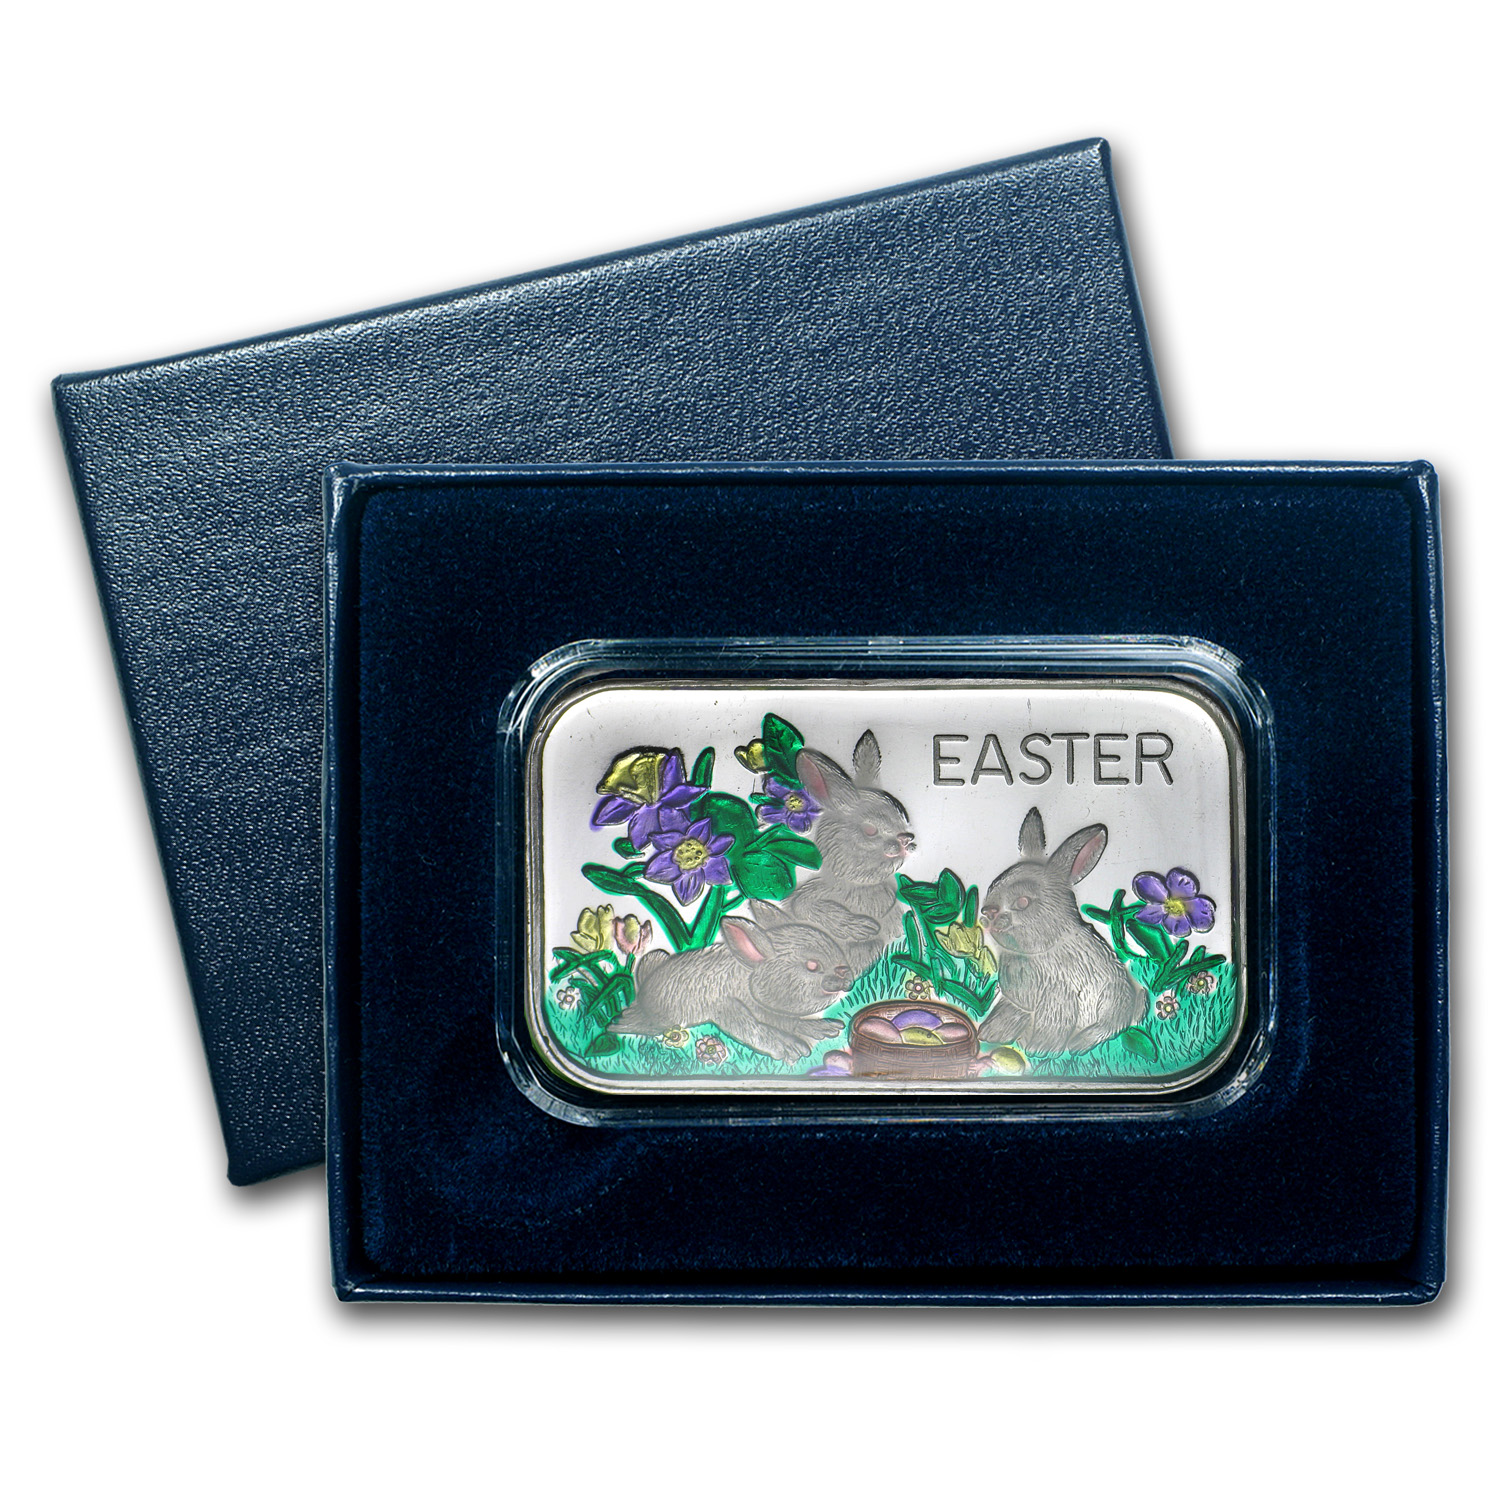 1 oz Silver Bar - Easter (Enameled, w/Box & Capsule)